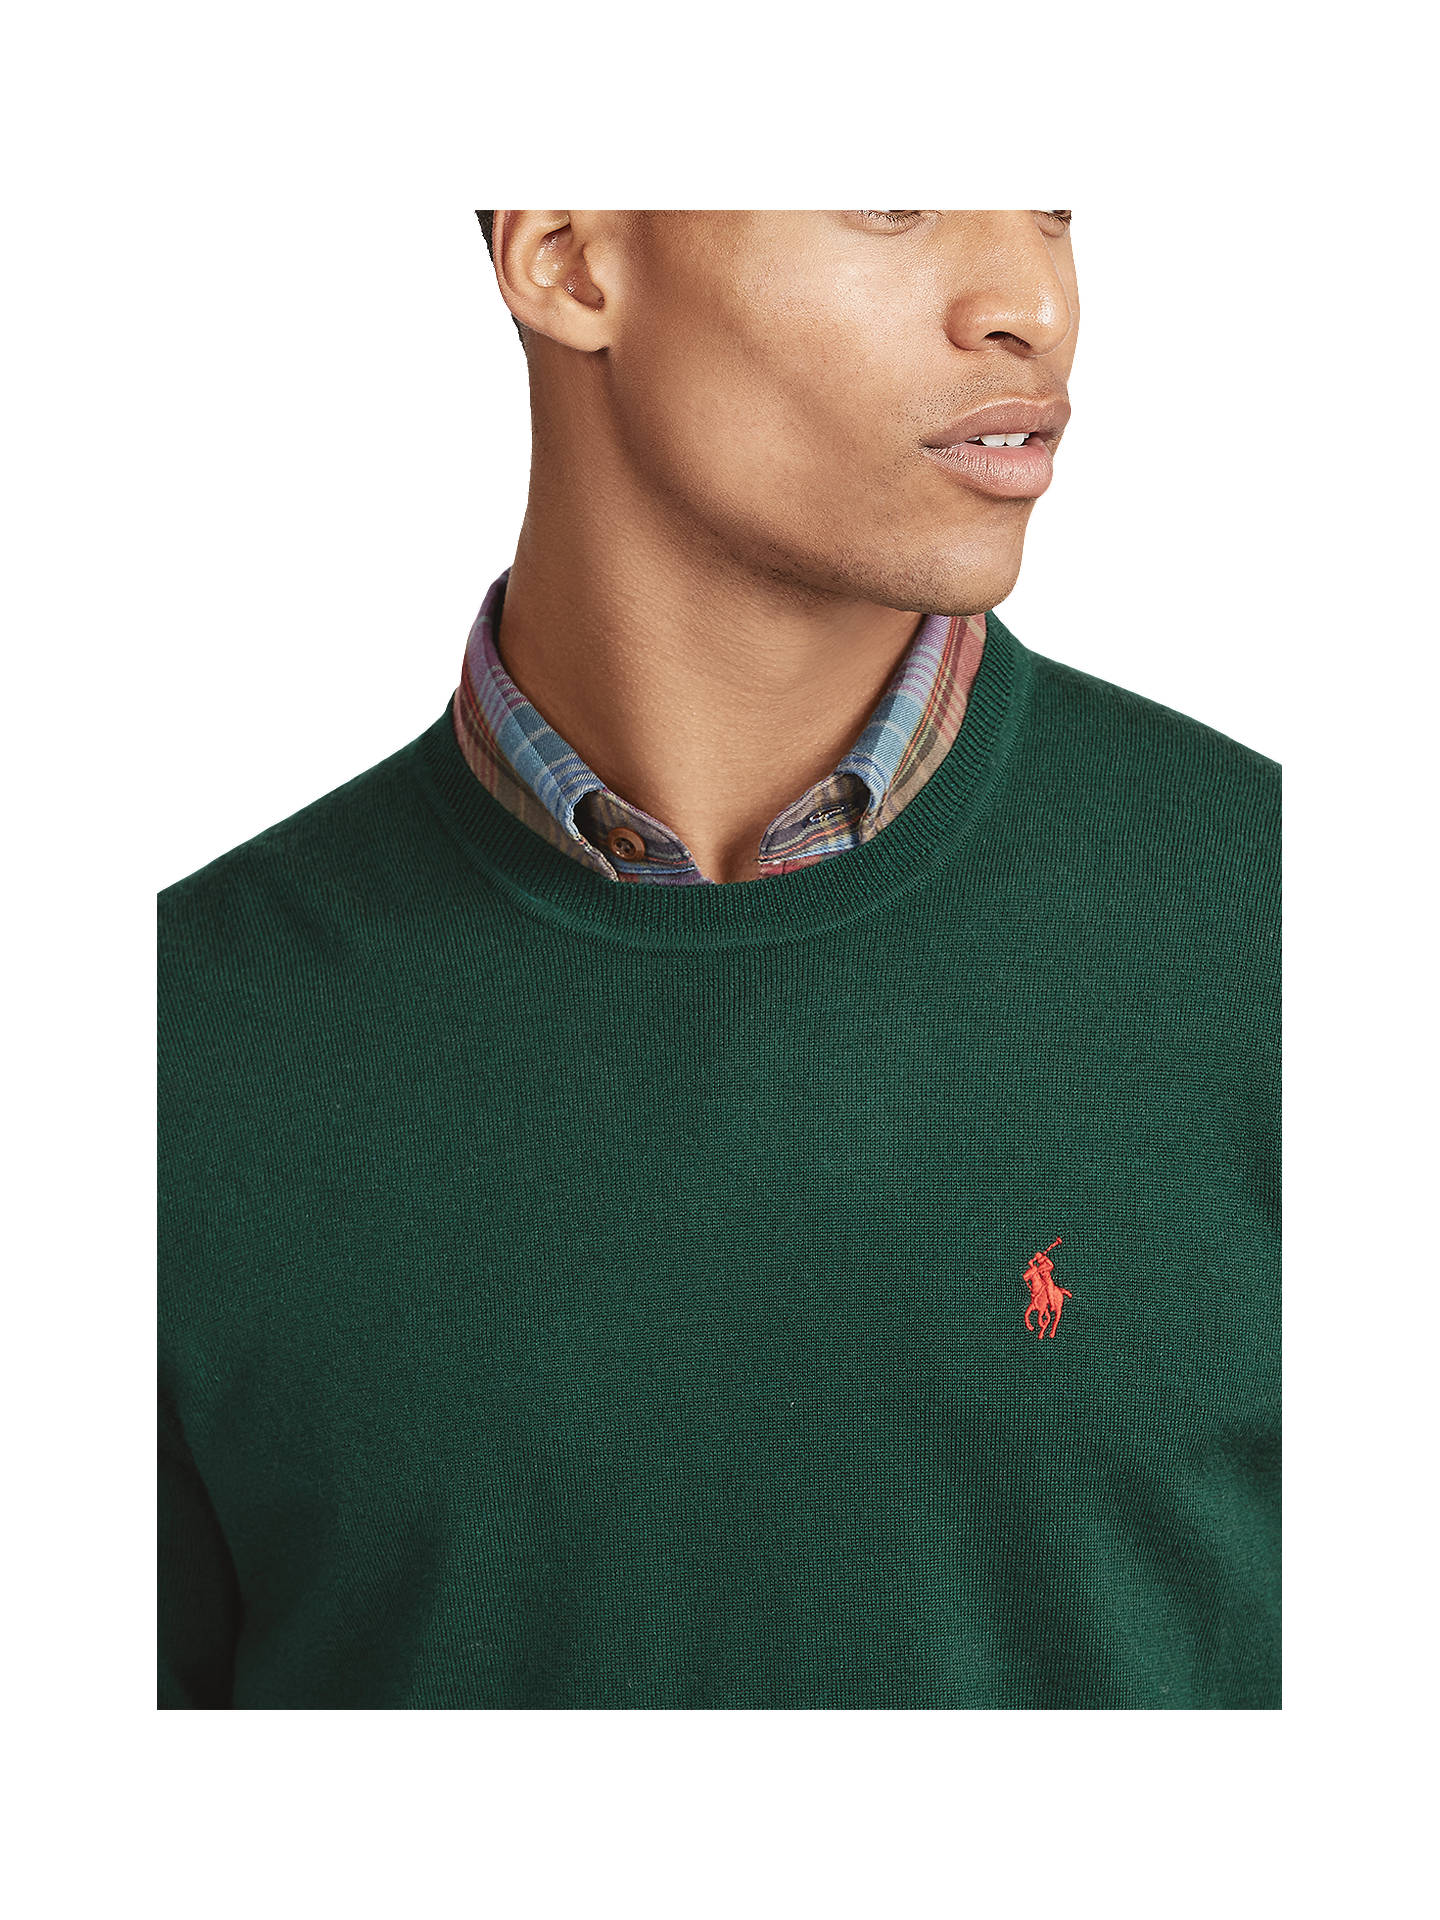 Buy Polo Ralph Lauren Crew Neck Merino Wool Jumper, College Green, L Online at johnlewis.com